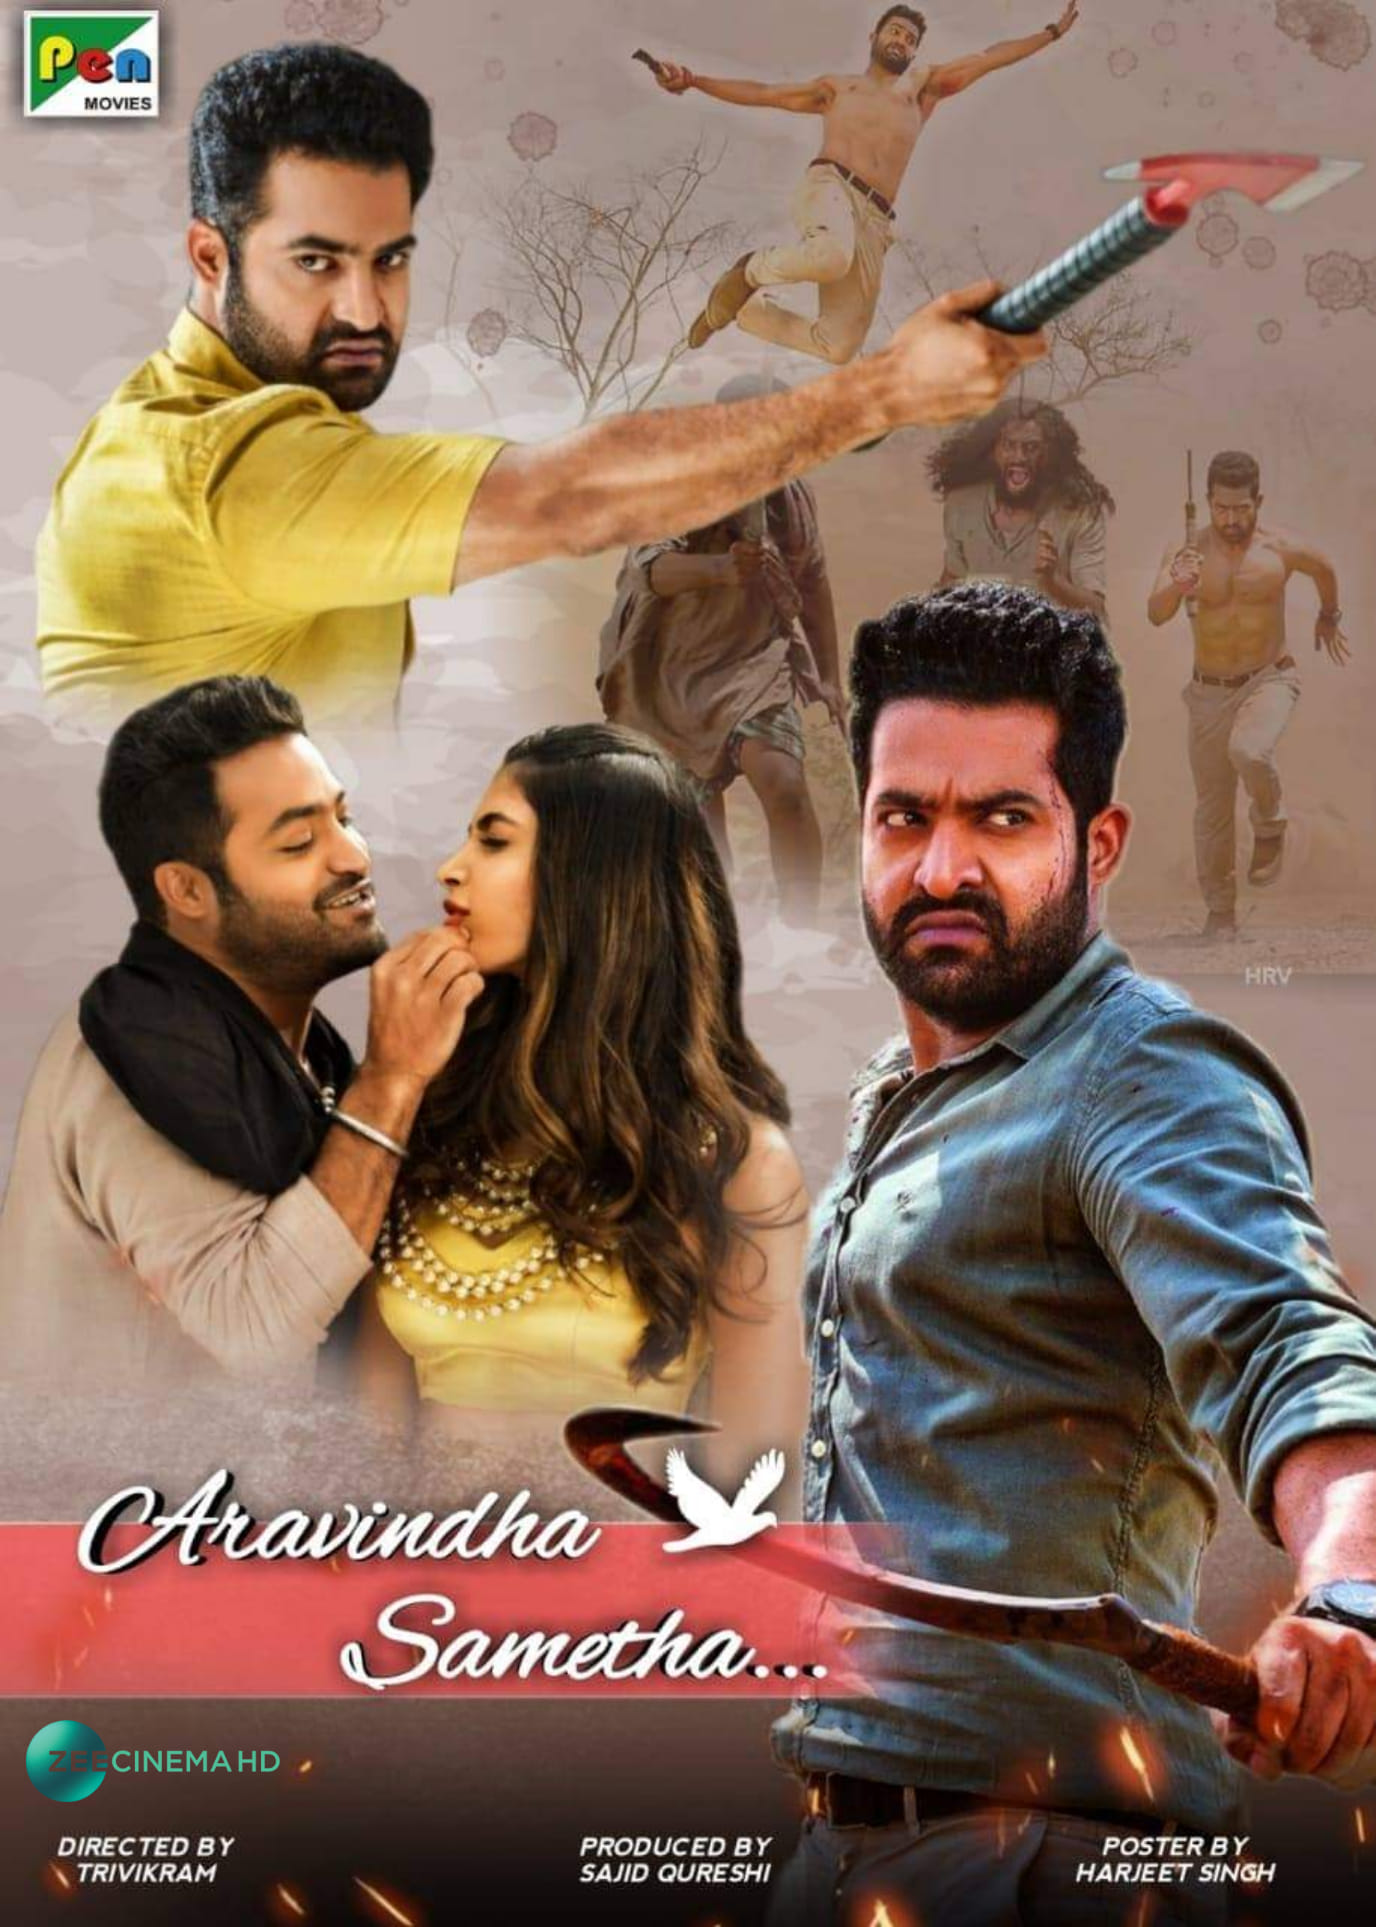 Aravinda Sametha Veera Raghava 2018 Hindi Dual Audio 600MB UNCUT HDRip Download